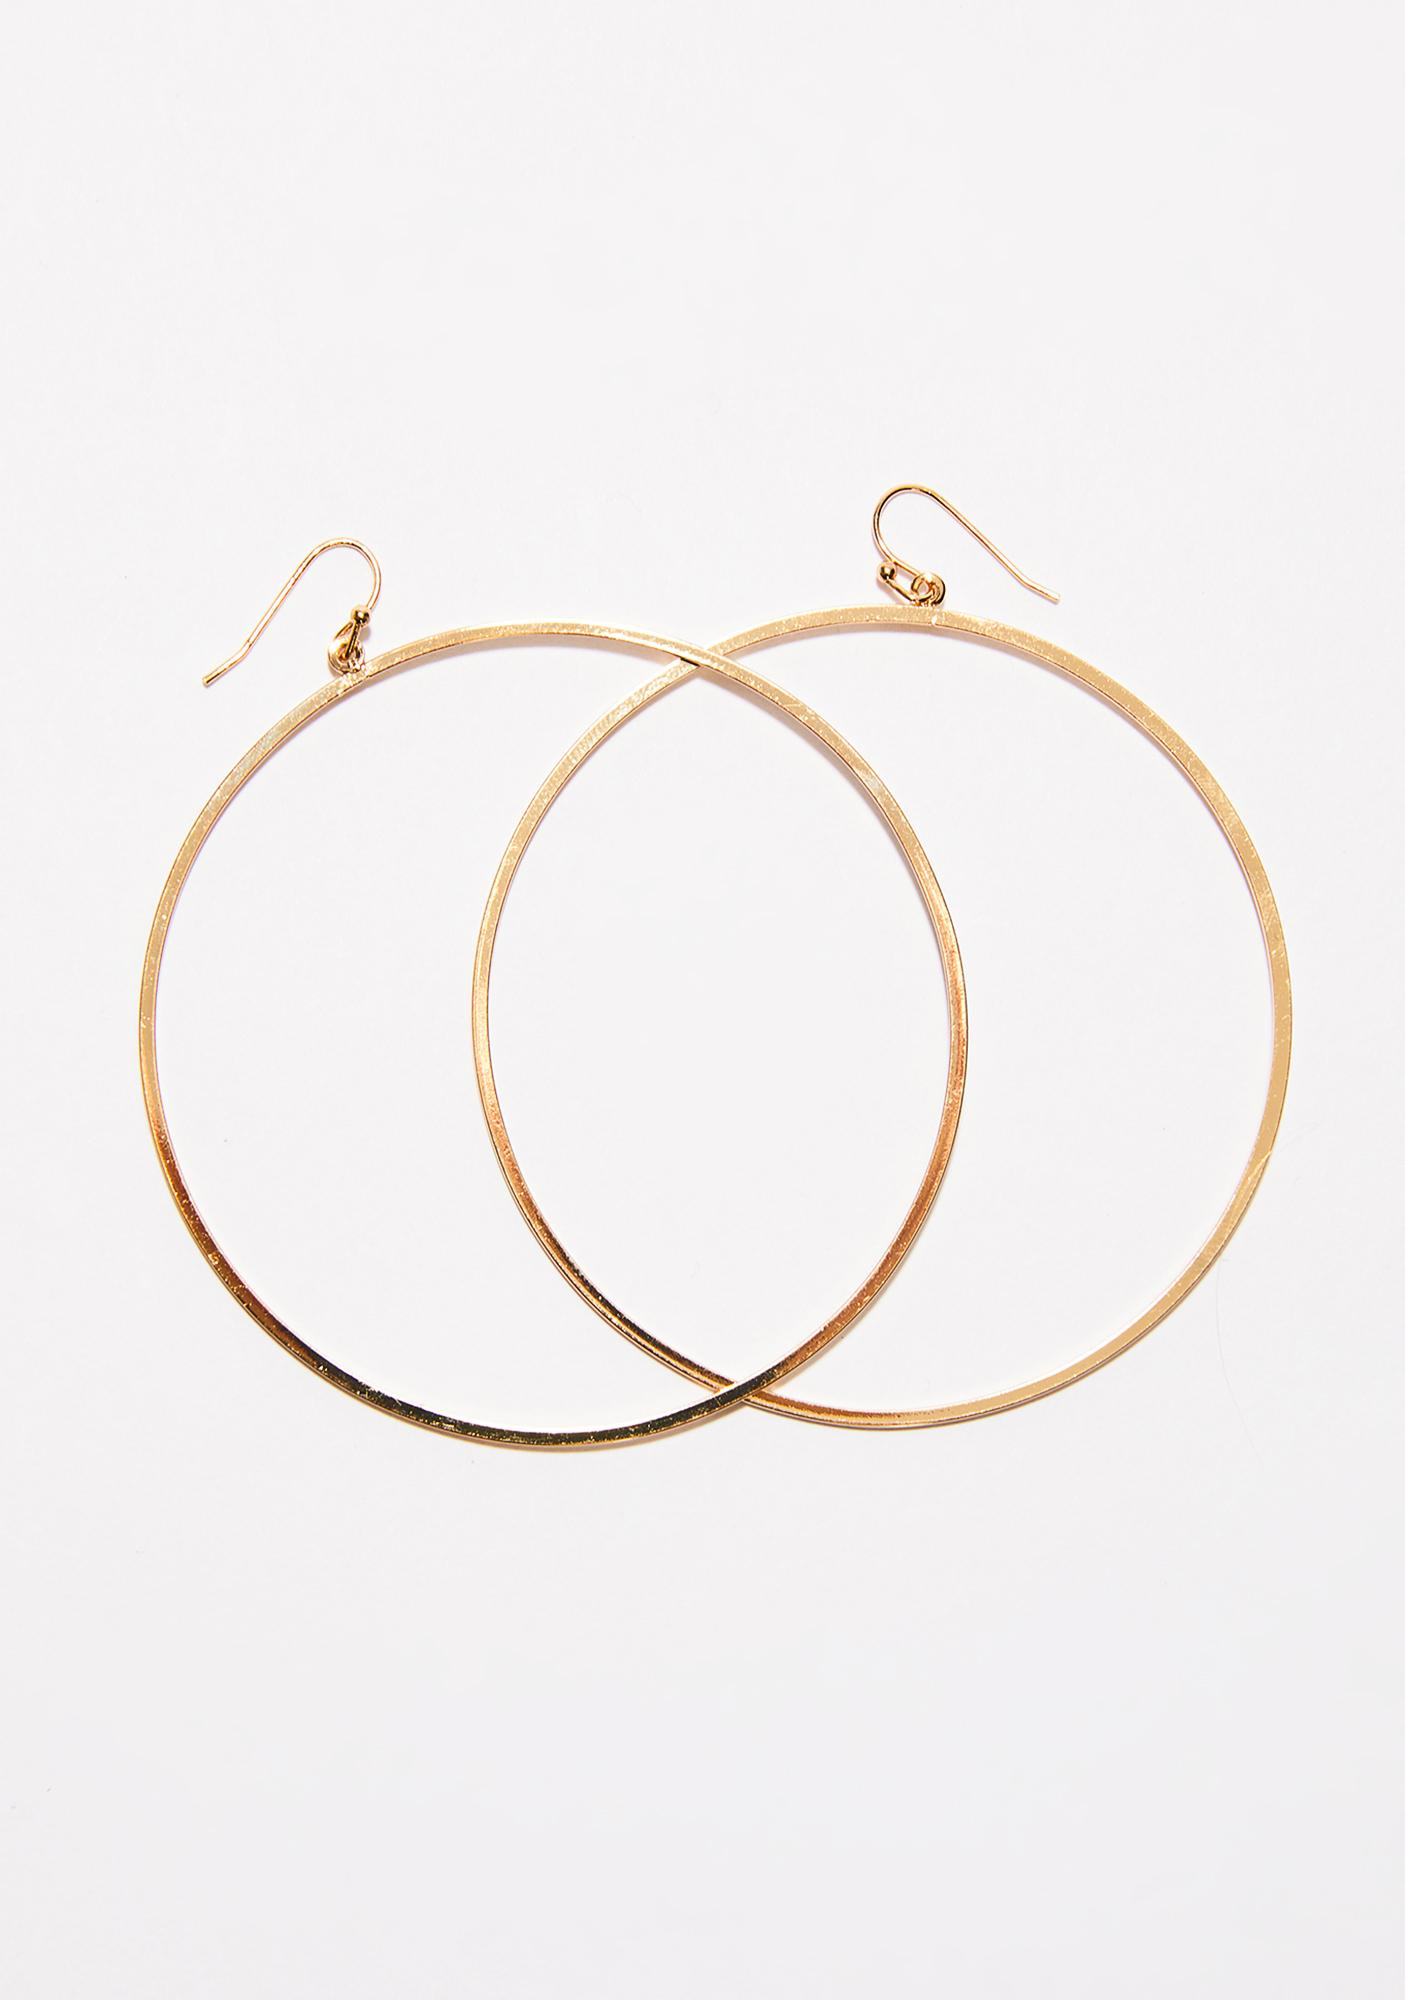 All The Vices Hoop Earrings